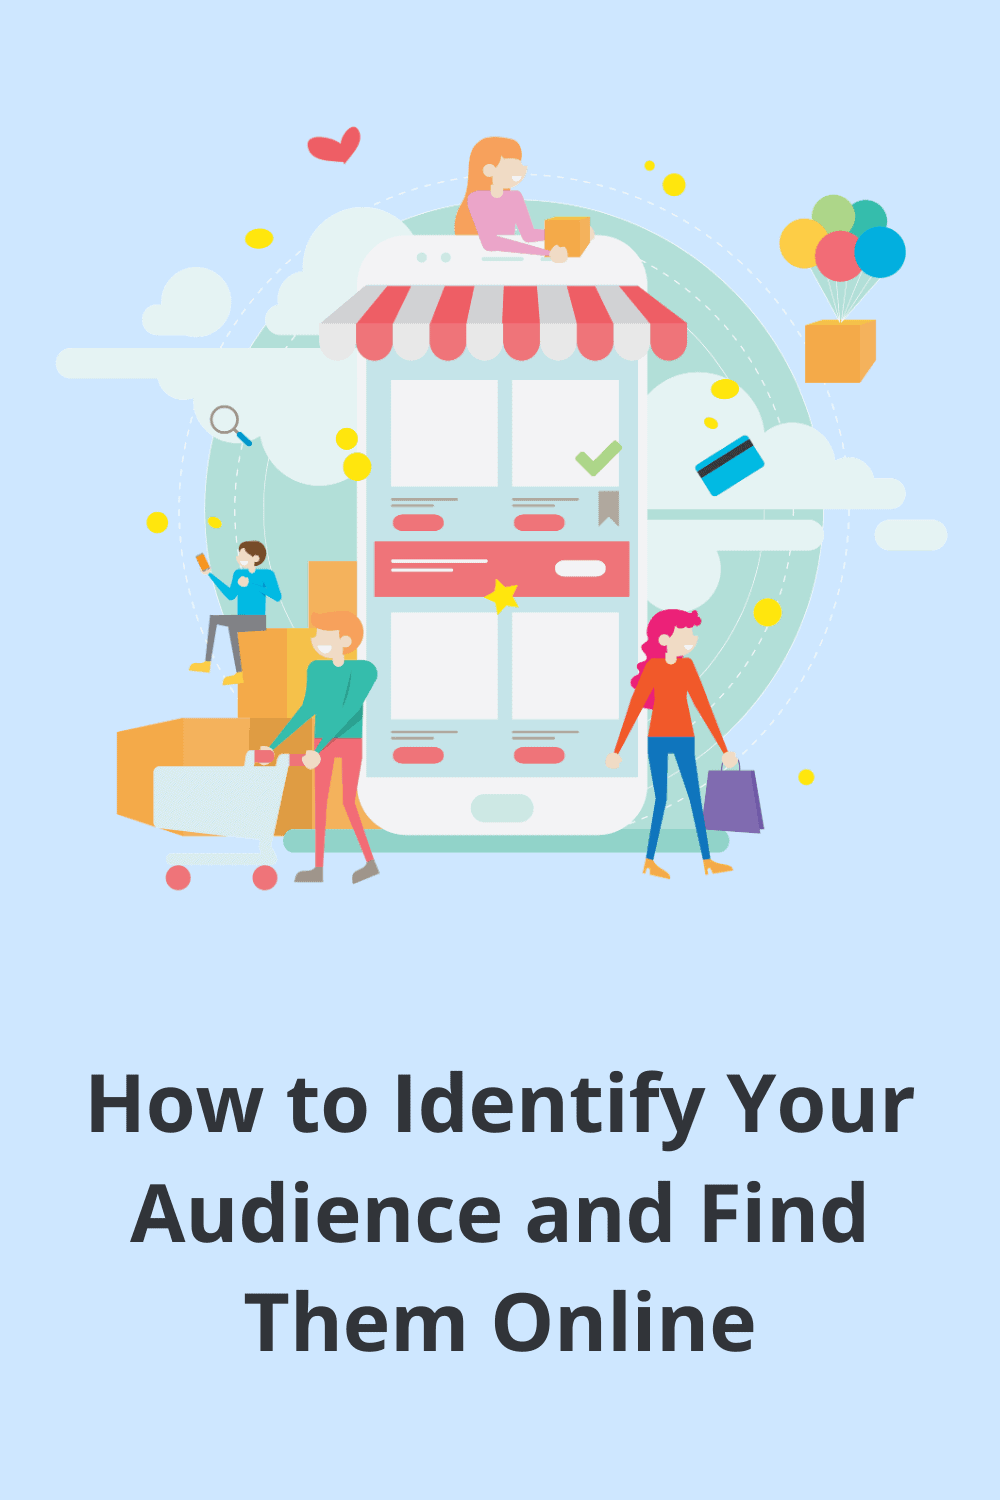 identify audience,finding audience,how to find your target audience on social media,target audience